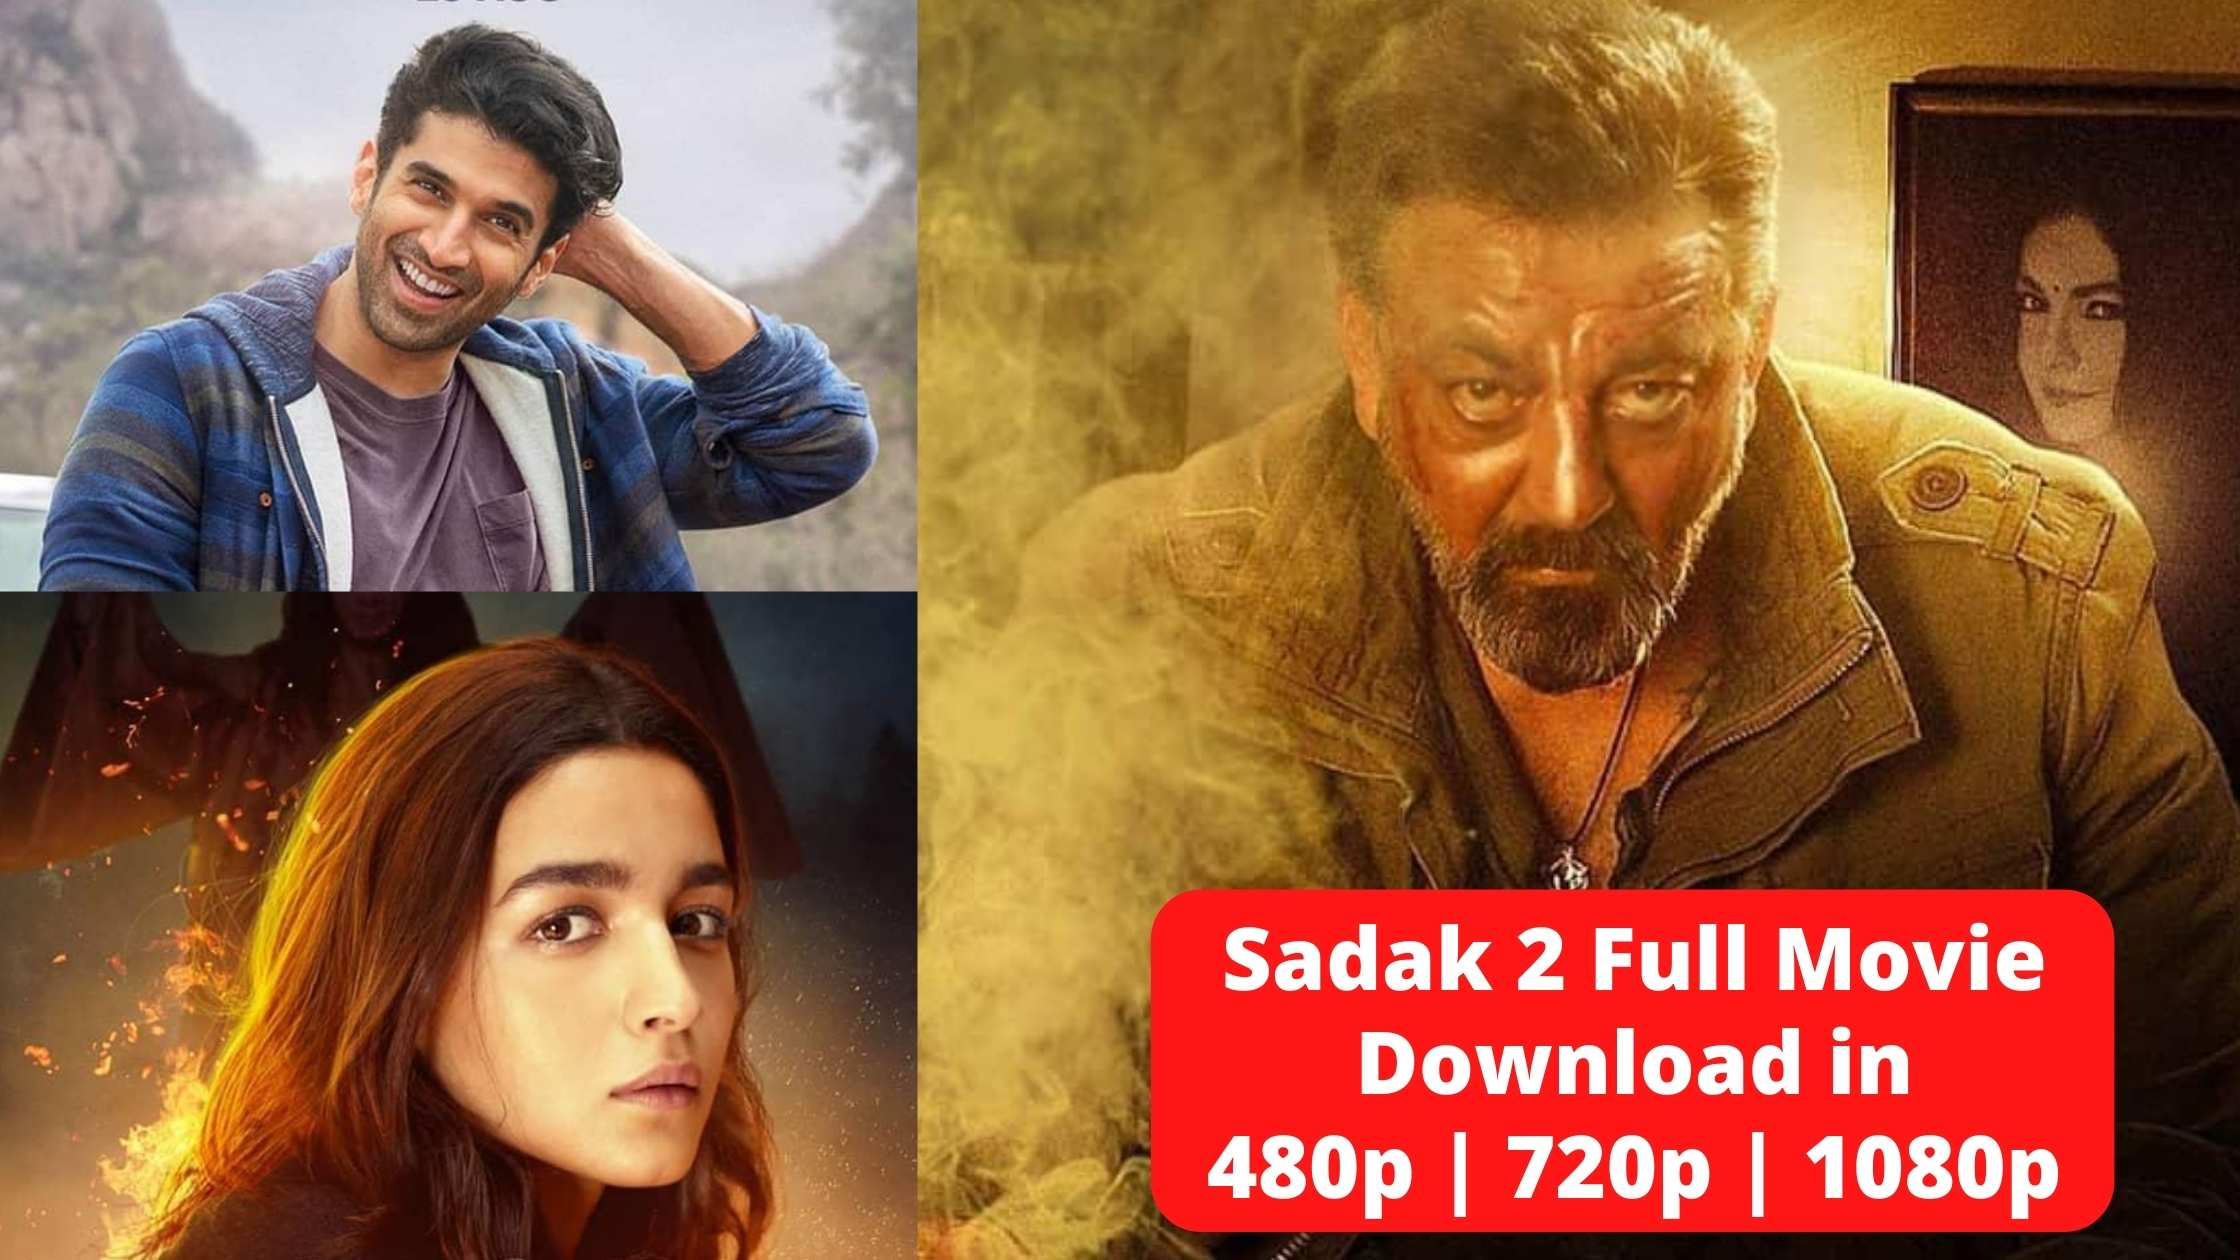 Sadak 2 Full Movie Download, Leaked on Filmywap, Movierulz, Tamilrockers, KatmovieHD, 7StarHD, Filmyzilla in HD Quality (1080P), 720p, 480p, 320p & Bluray Resolution